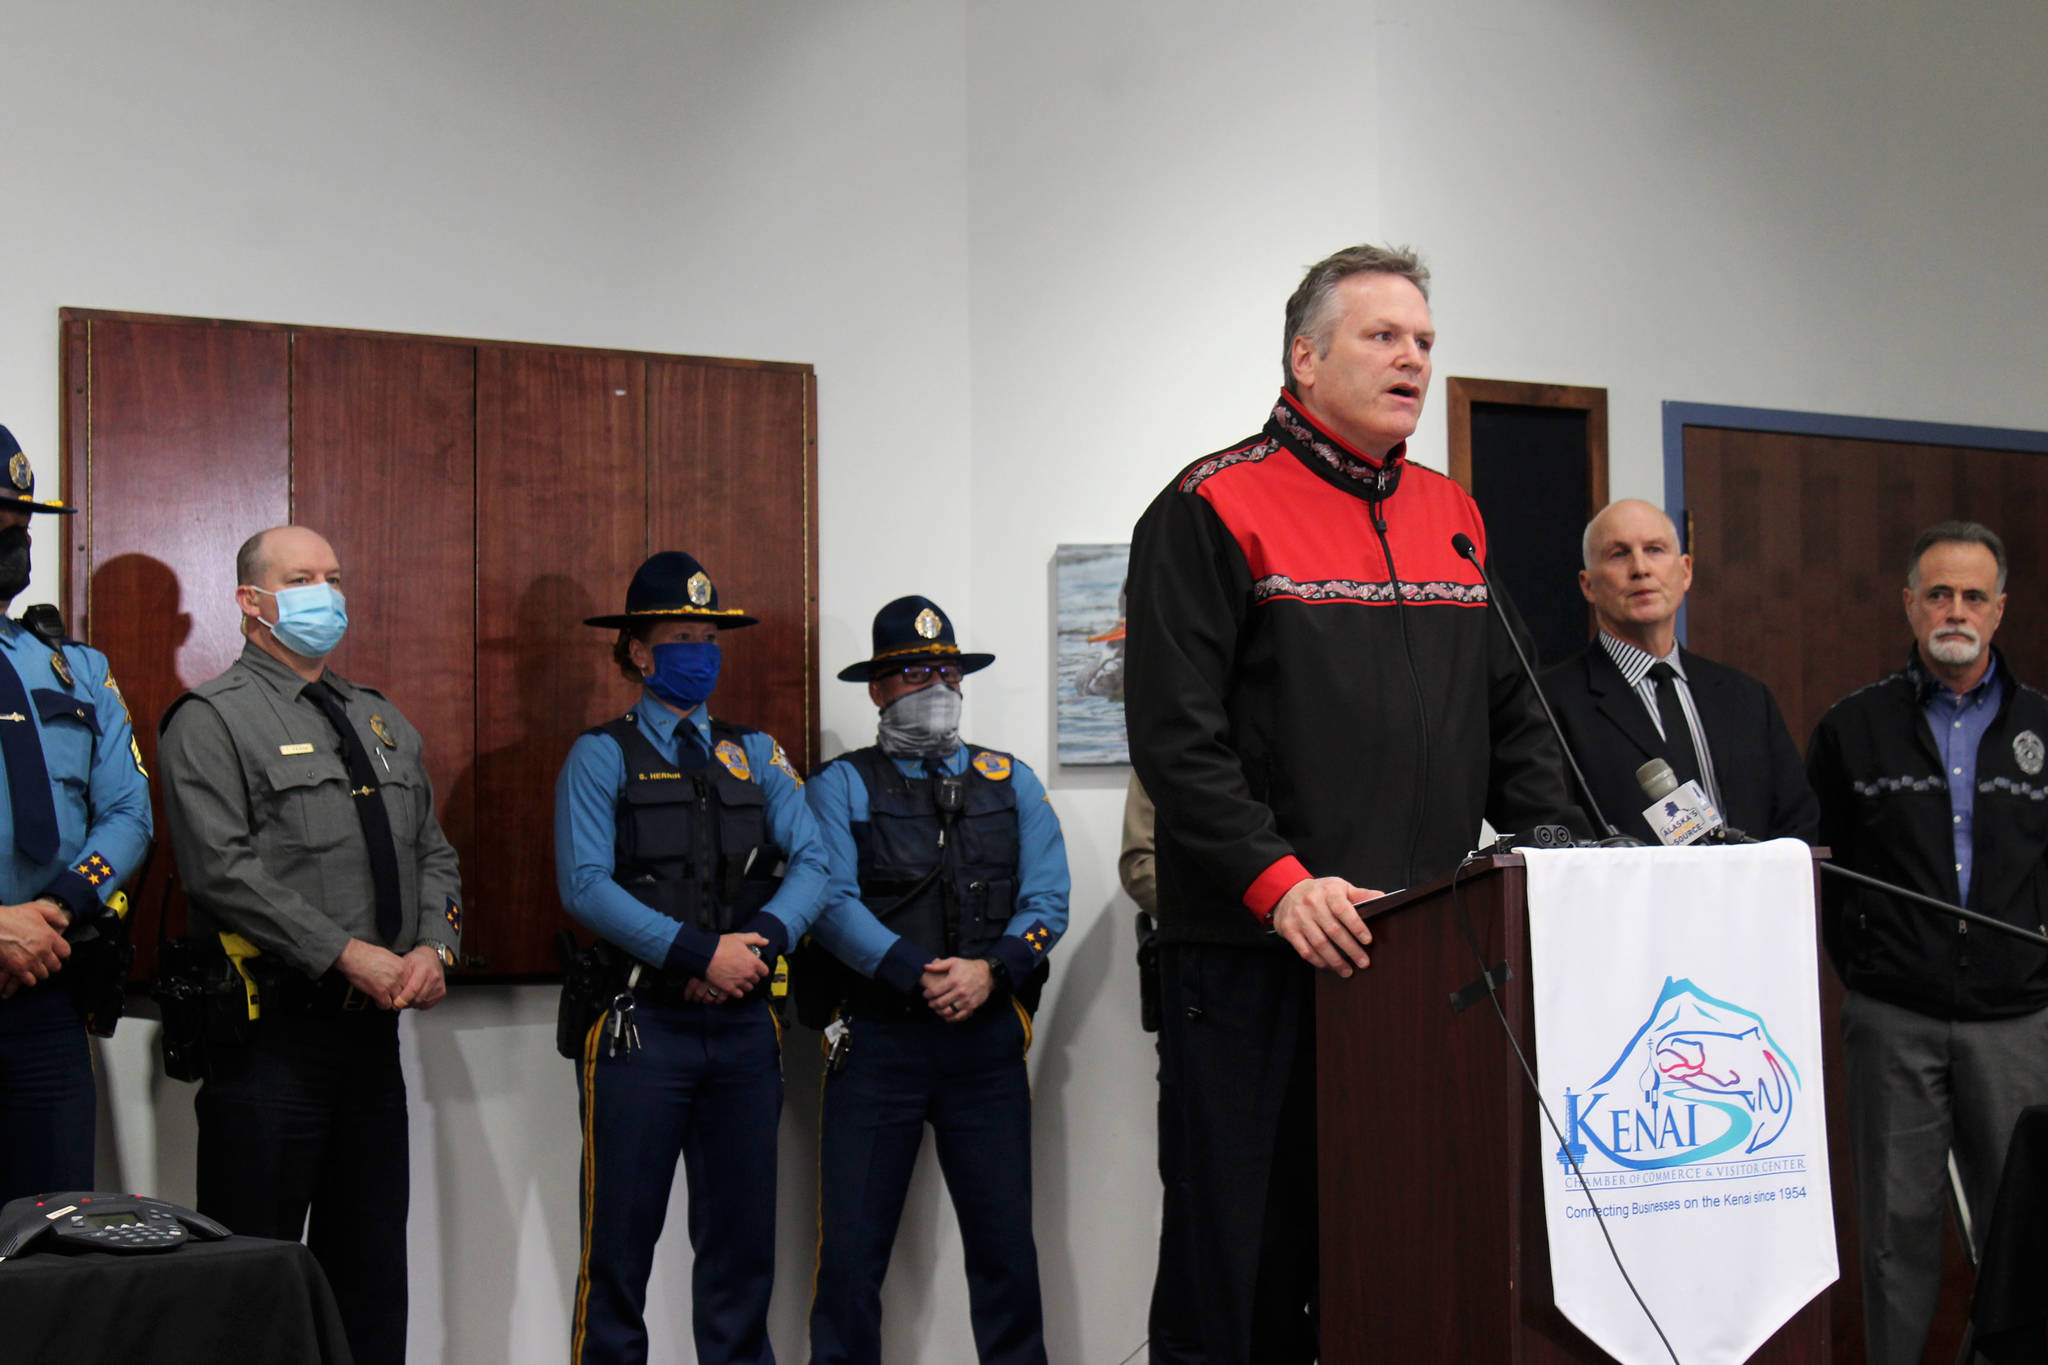 Gov. Mike Dunleavy speaks at the Kenai Chamber of Commerce and Visitor Center on Tuesday, April 6 in Kenai, Alaska. (Ashlyn O'Hara/Peninsula Clarion)